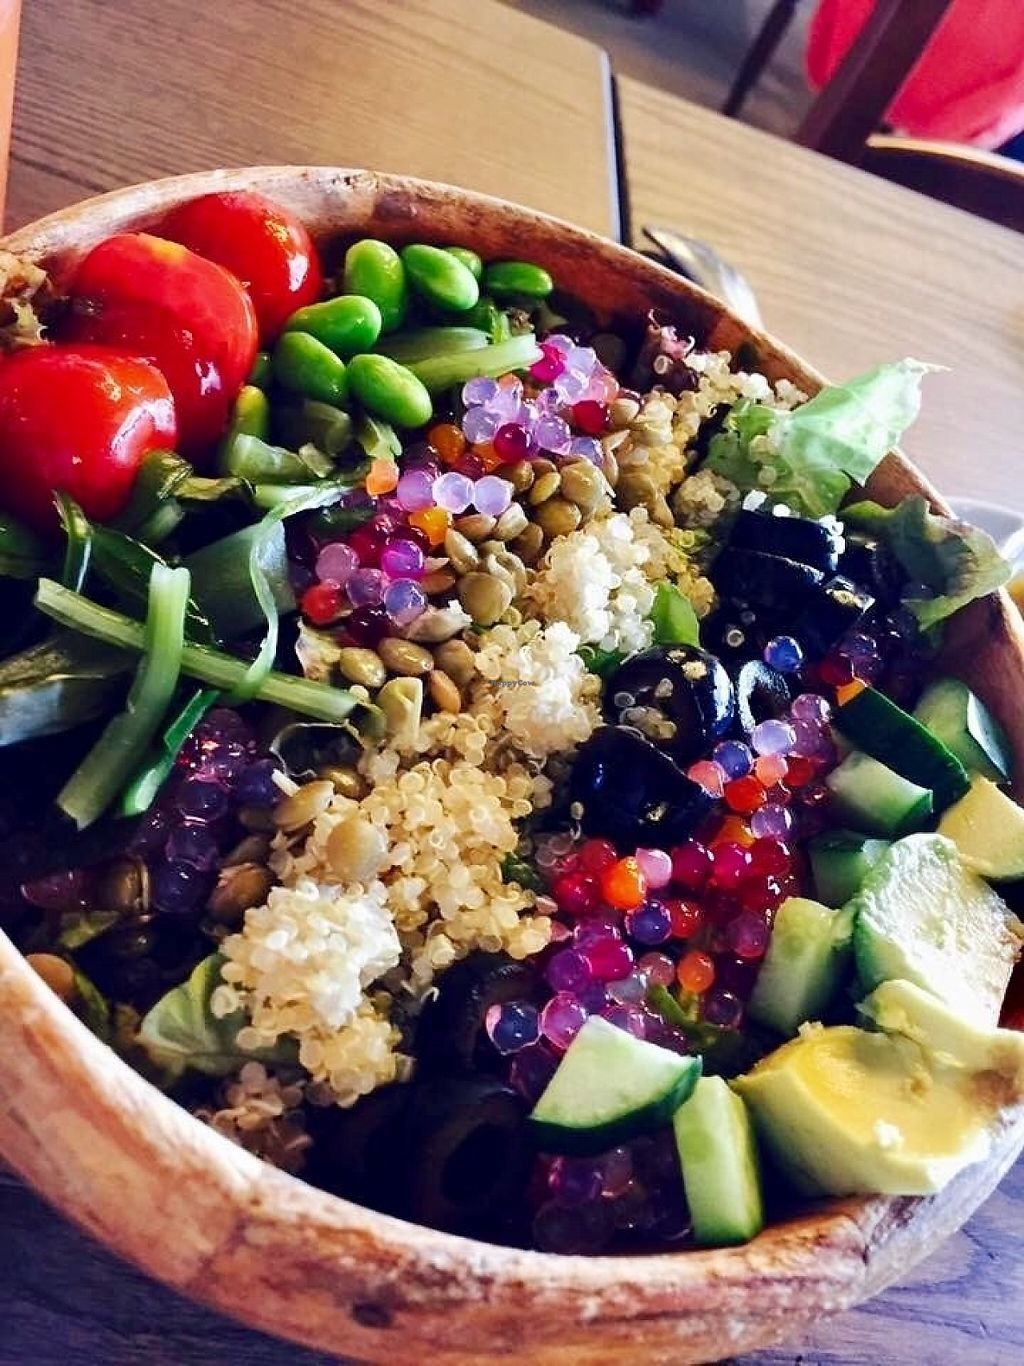 """Photo of Cafe La Boheme - G-Zone  by <a href=""""/members/profile/paulkates"""">paulkates</a> <br/>Vegan tofu salad <br/> June 7, 2017  - <a href='/contact/abuse/image/93479/266520'>Report</a>"""